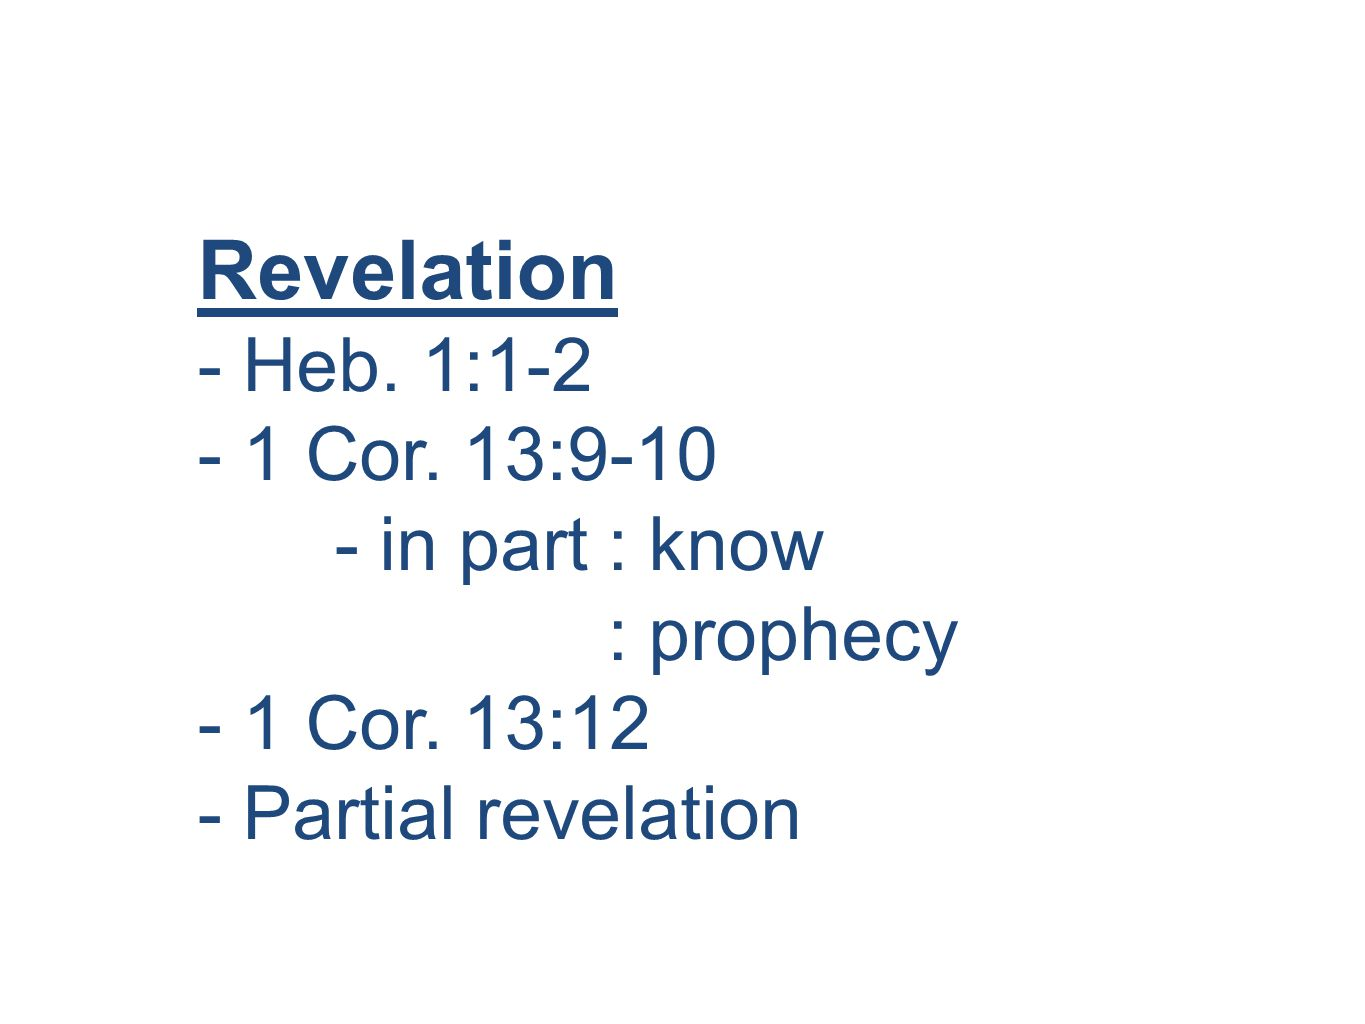 Revelation - Heb. 1:1-2 - 1 Cor. 13:9-10 - in part: know : prophecy - 1 Cor.